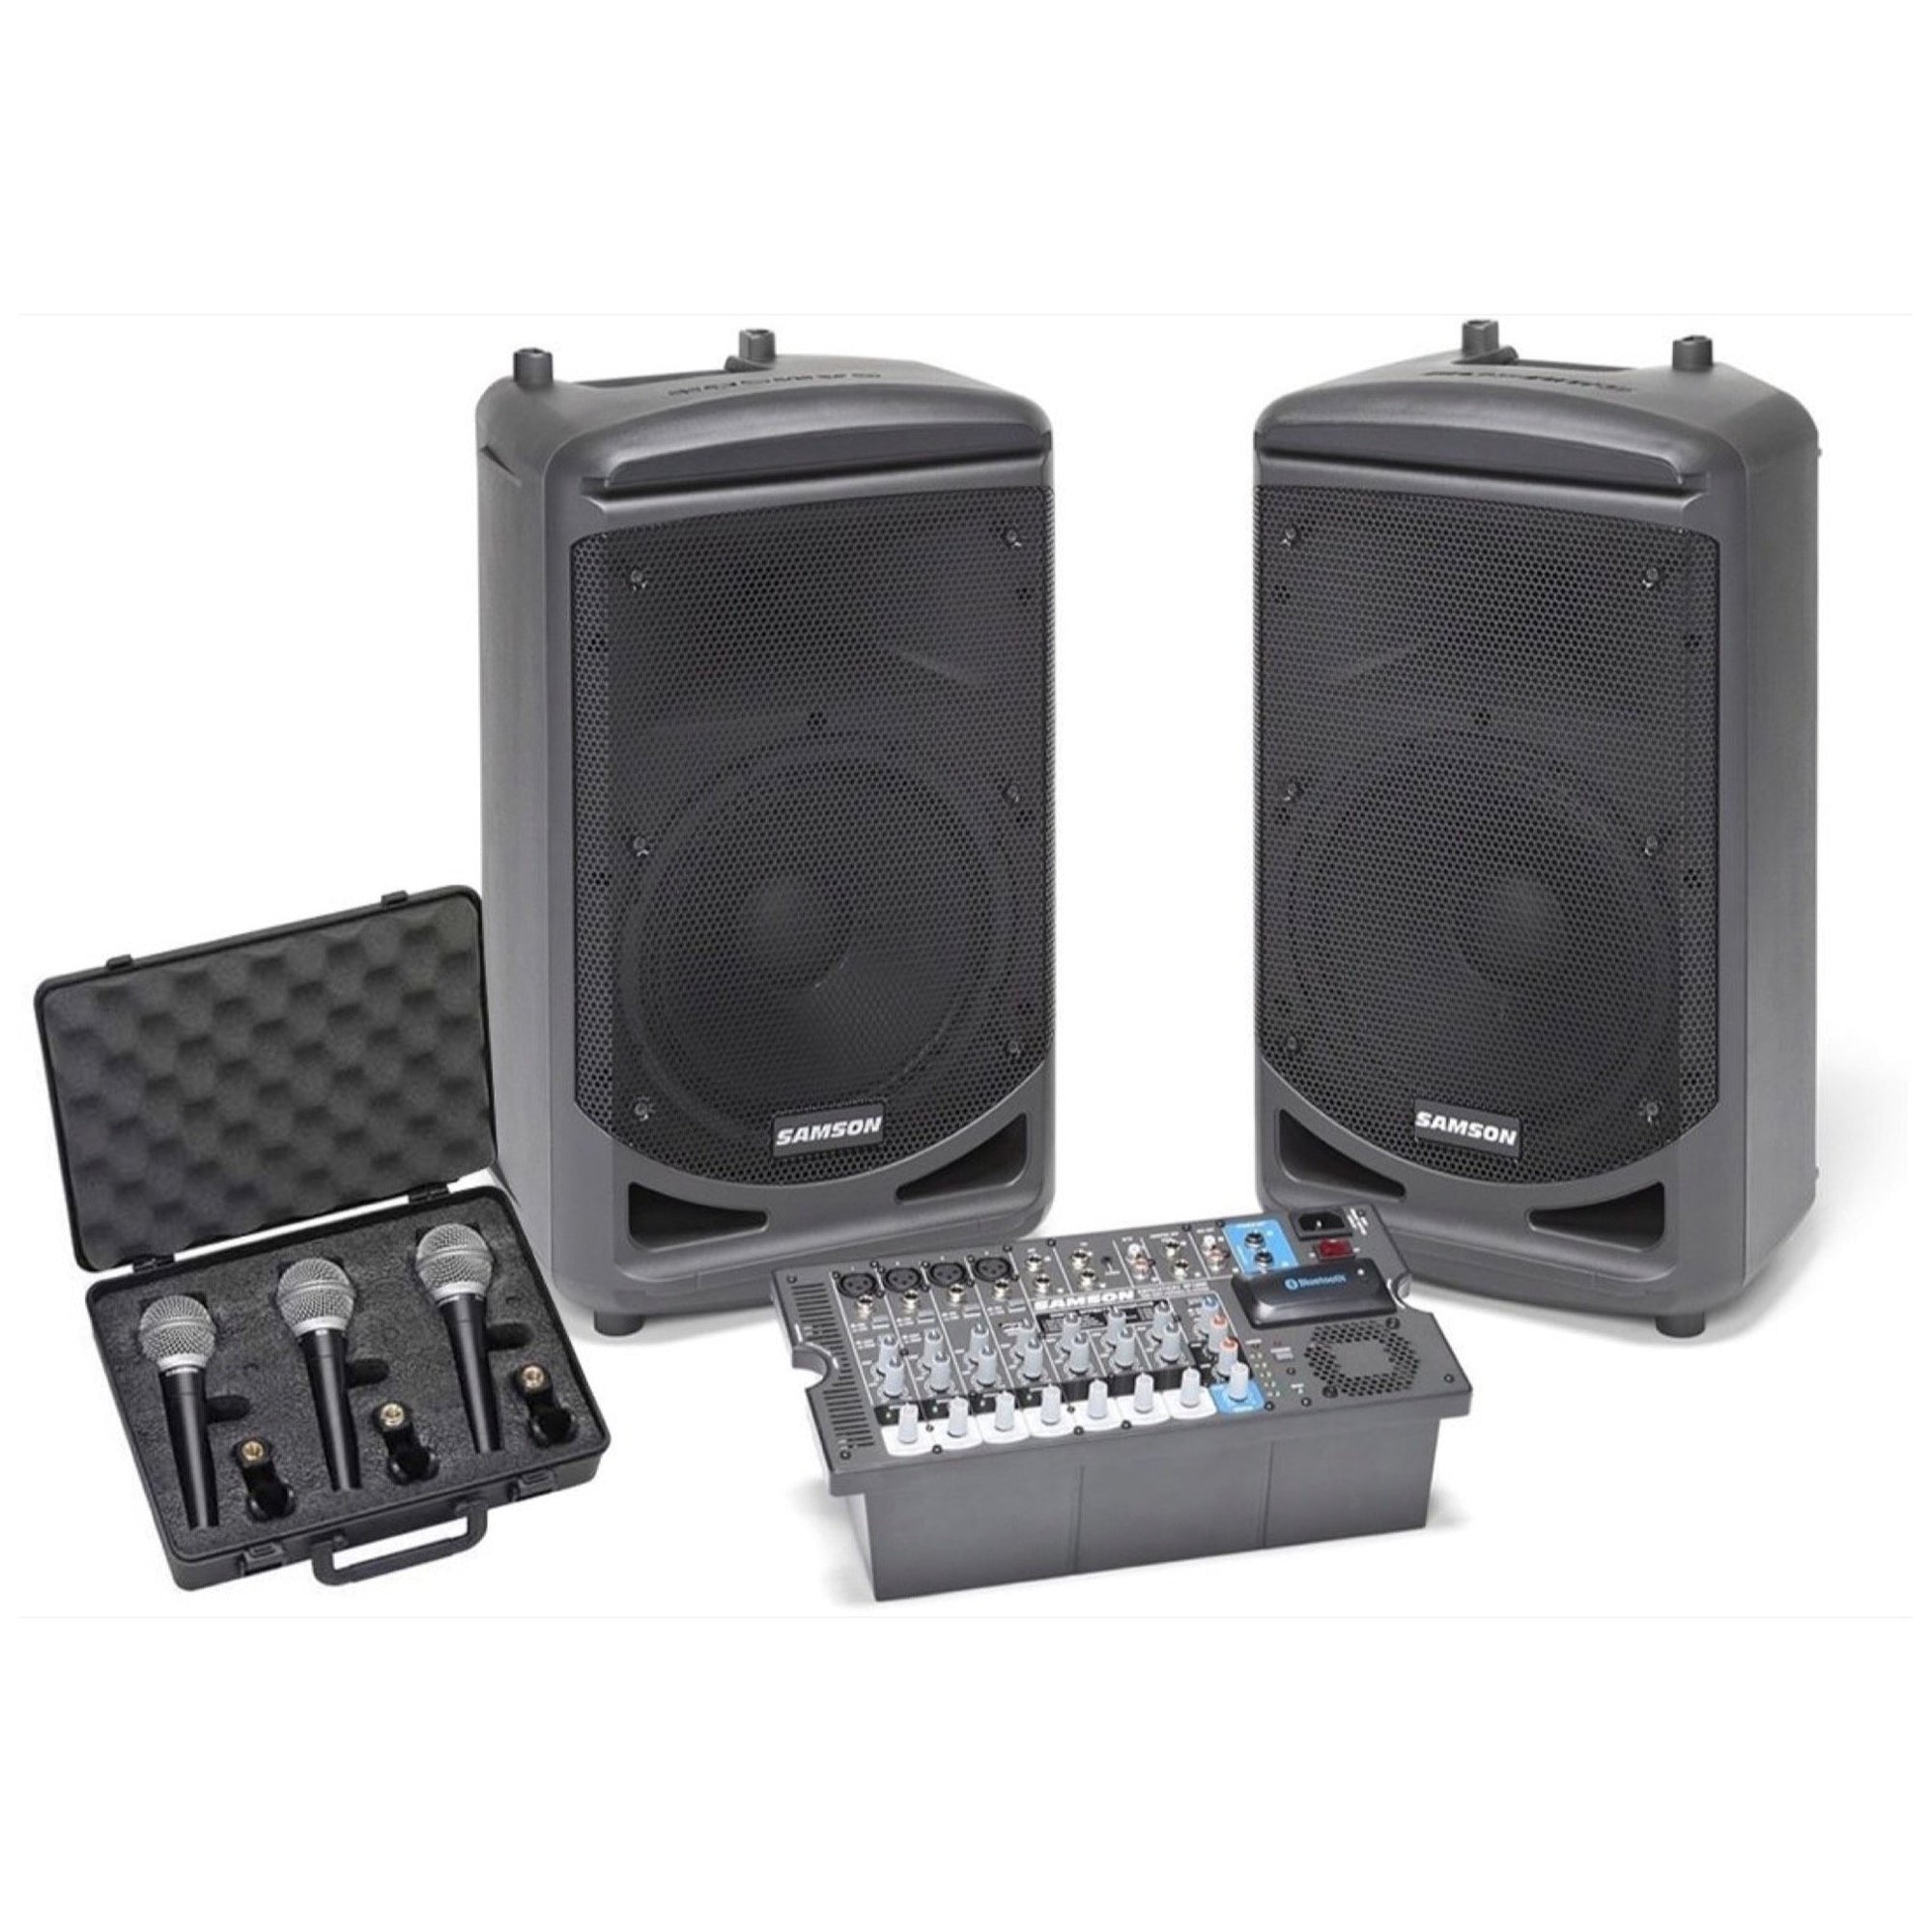 Samson XP1000 Portable Bluetooth PA System, with Free Samson R21 Microphone and MC18 XLR Pack